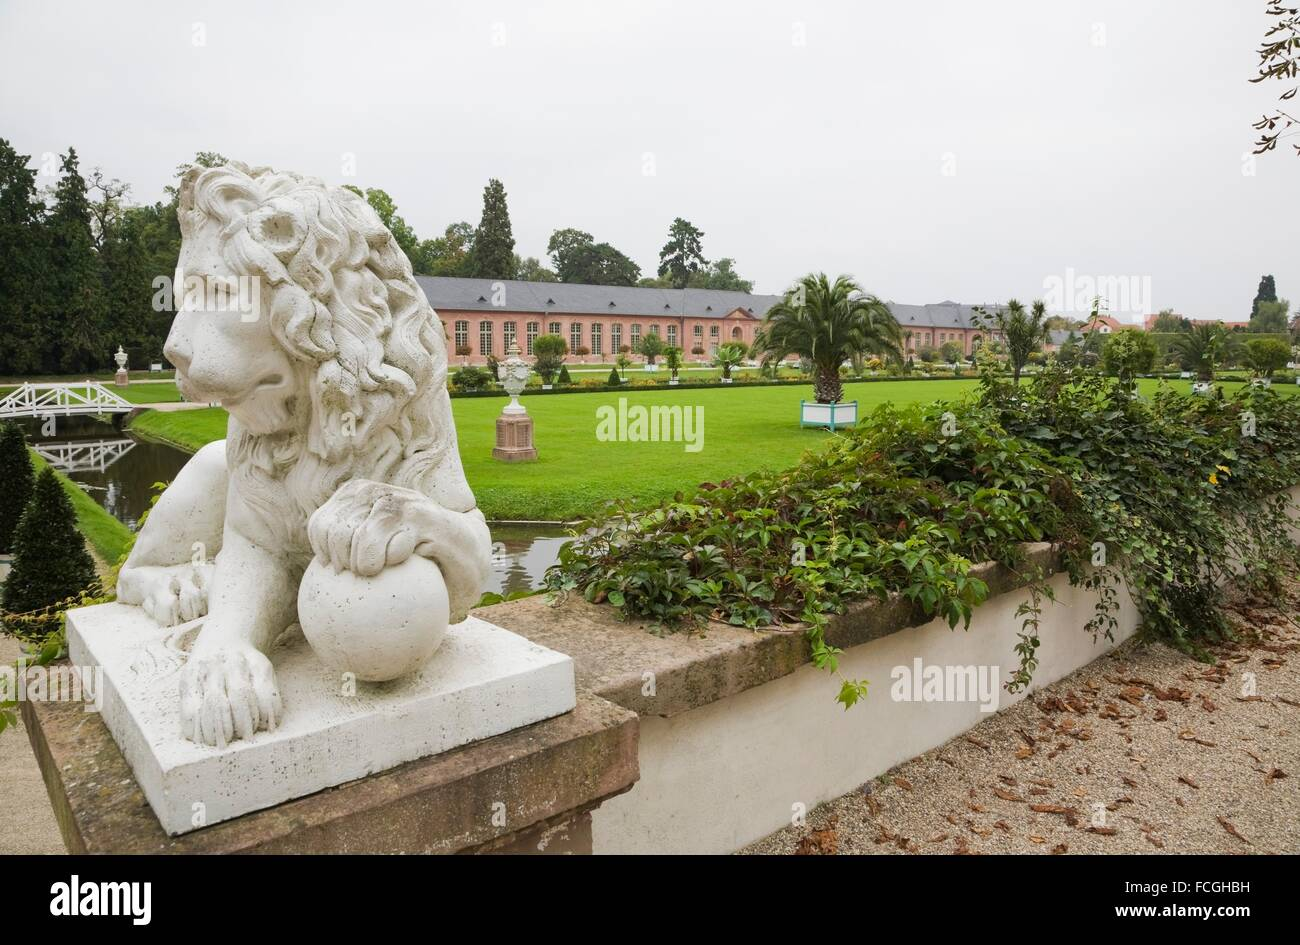 Lion sculpture and new orangery on the Schwetzingen palace grounds in late summer, Schwetzingen, Germany. - Stock Image